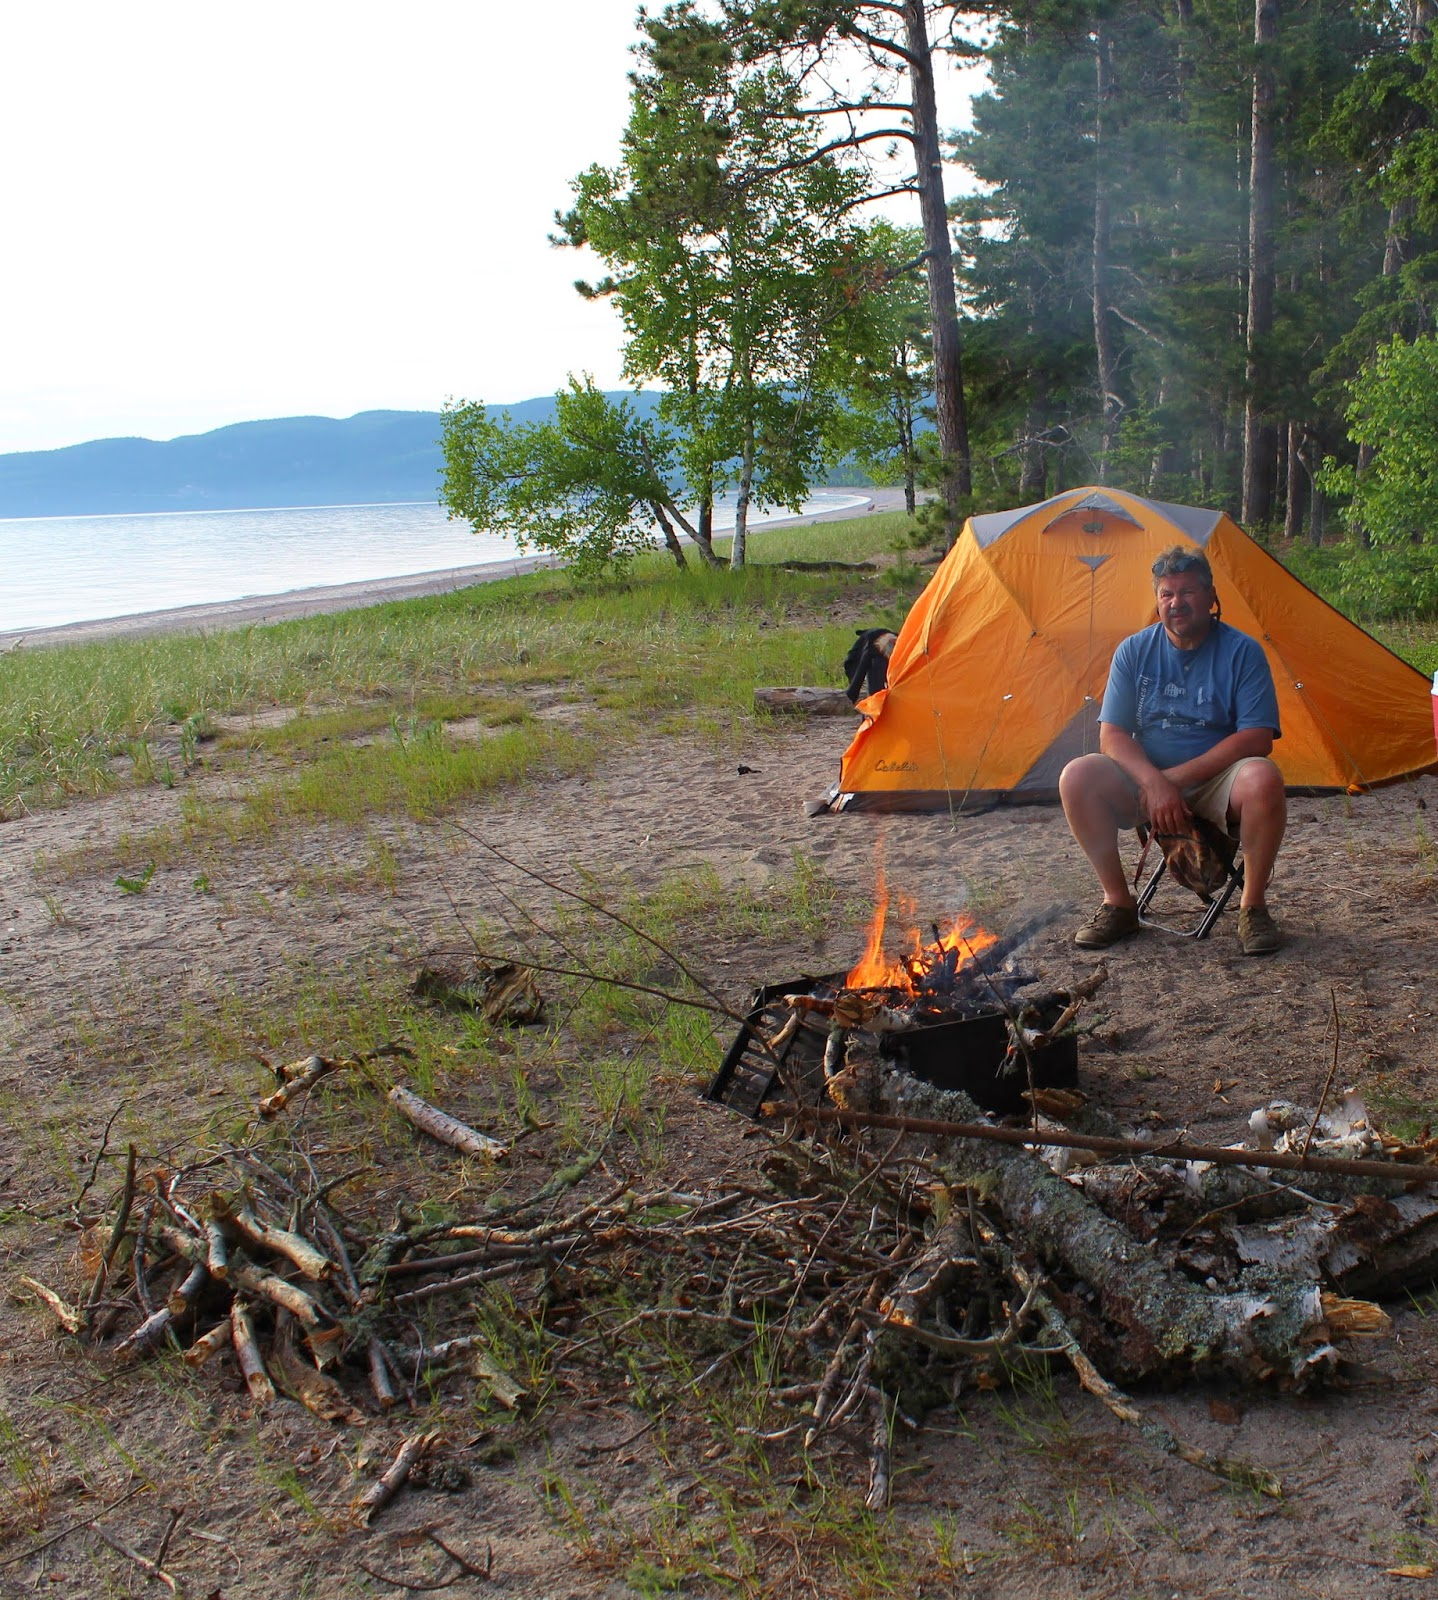 Tent c&ing on the beach Lake Superior Canada & Ohio Thoughts~: Lake Superior Circle Tour Canada